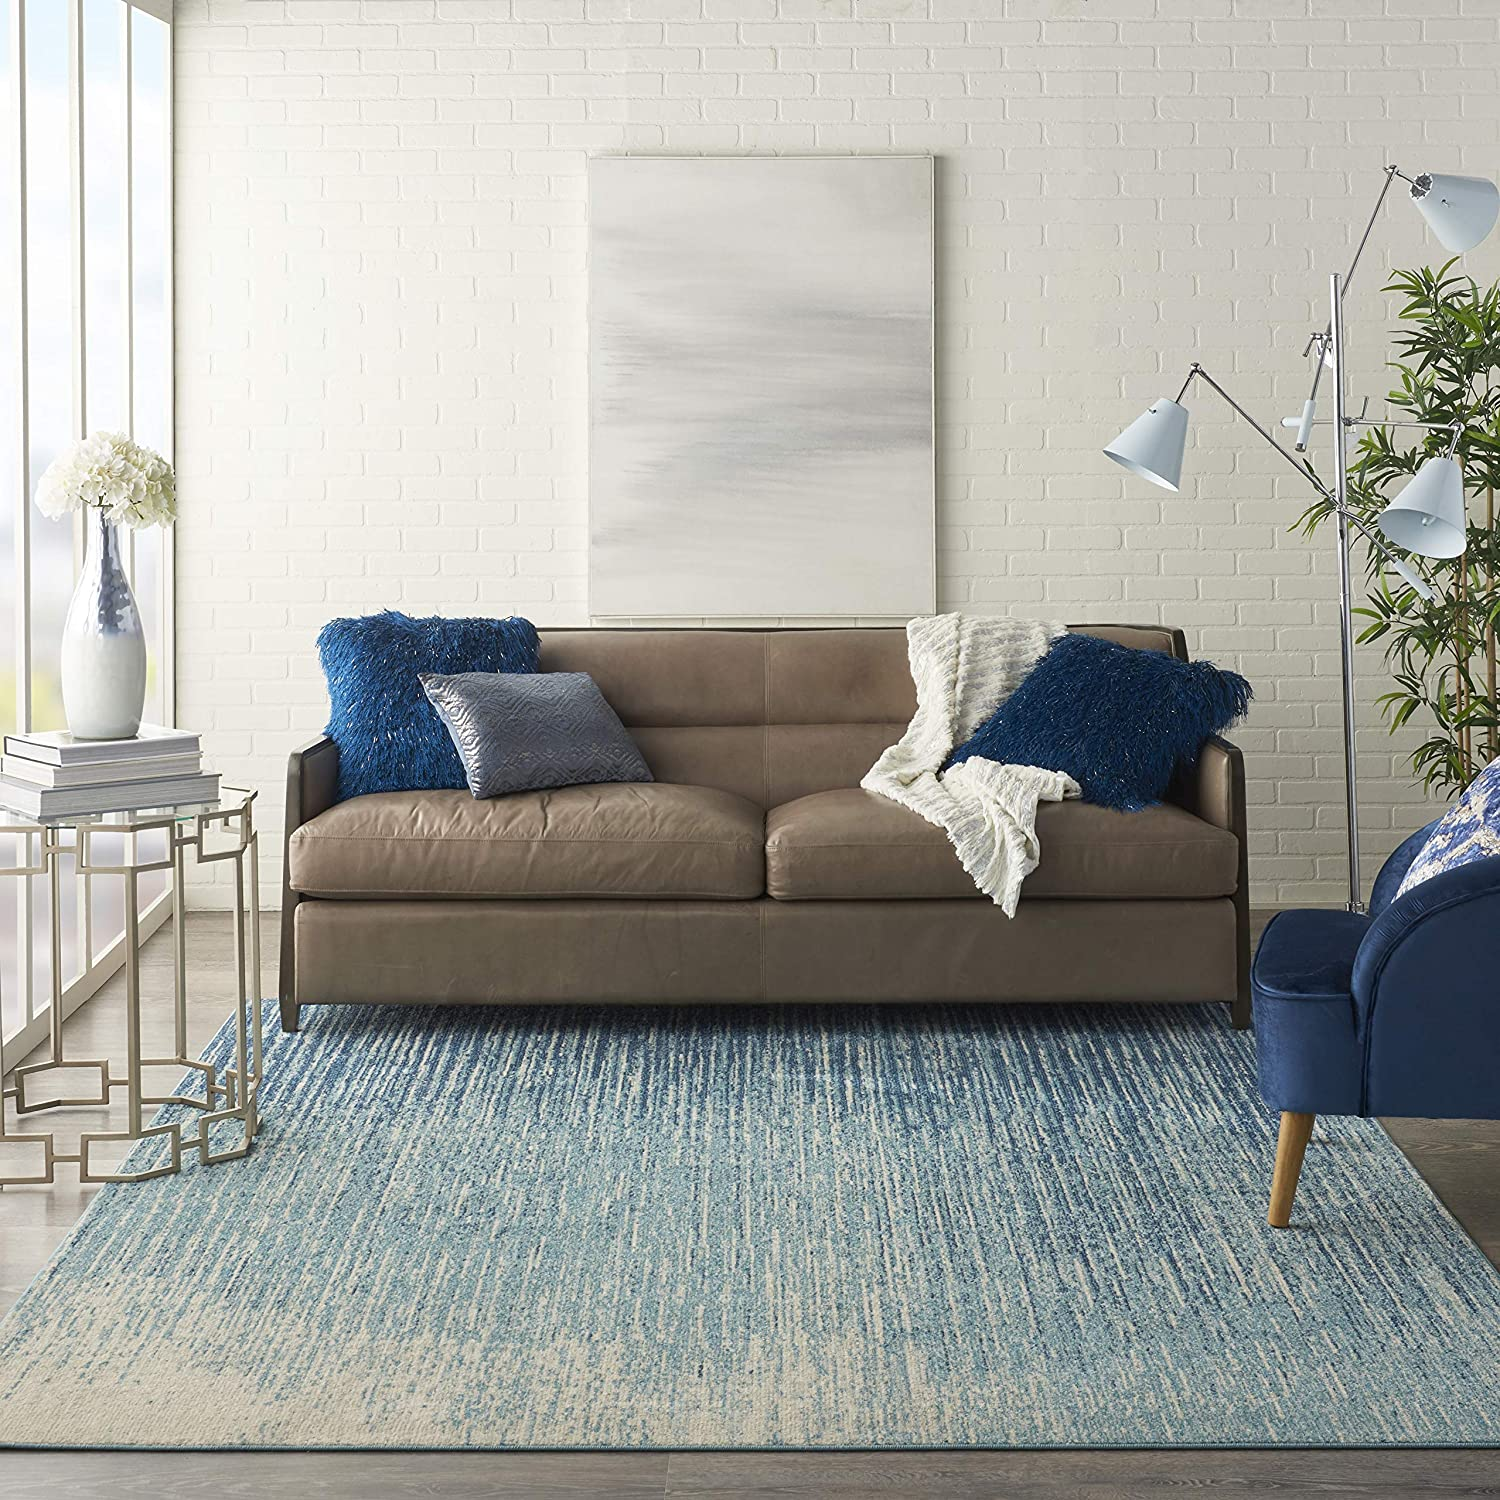 Nourison Passion Modern Abstract Navy/Light Blue Area Rug (7' x 10'), 6'7